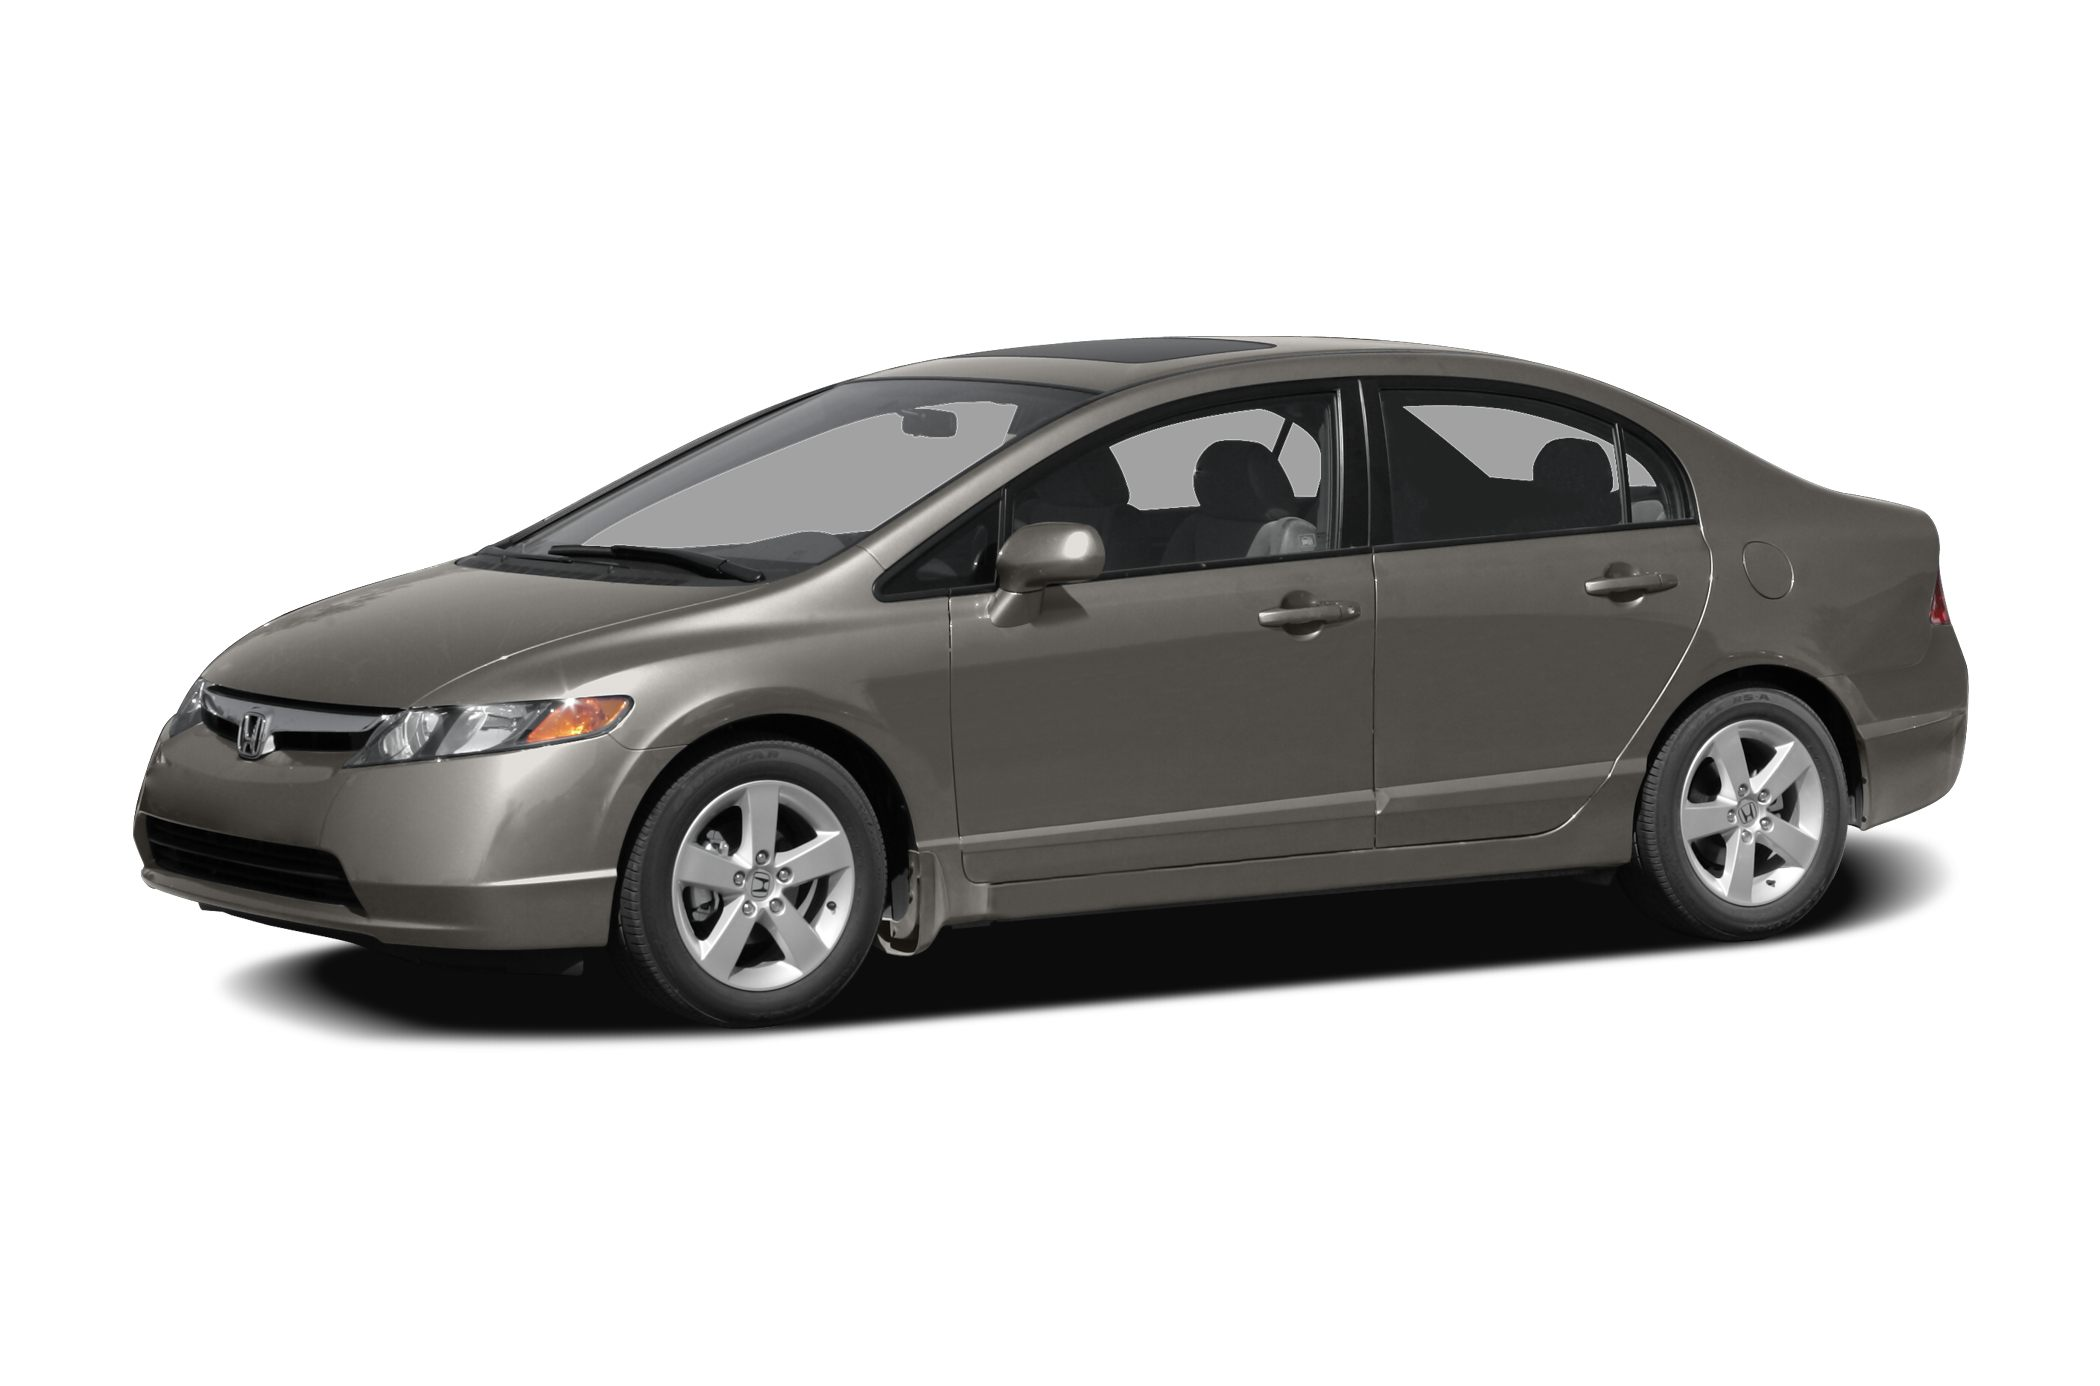 2007 Honda Civic Pricing And Specs